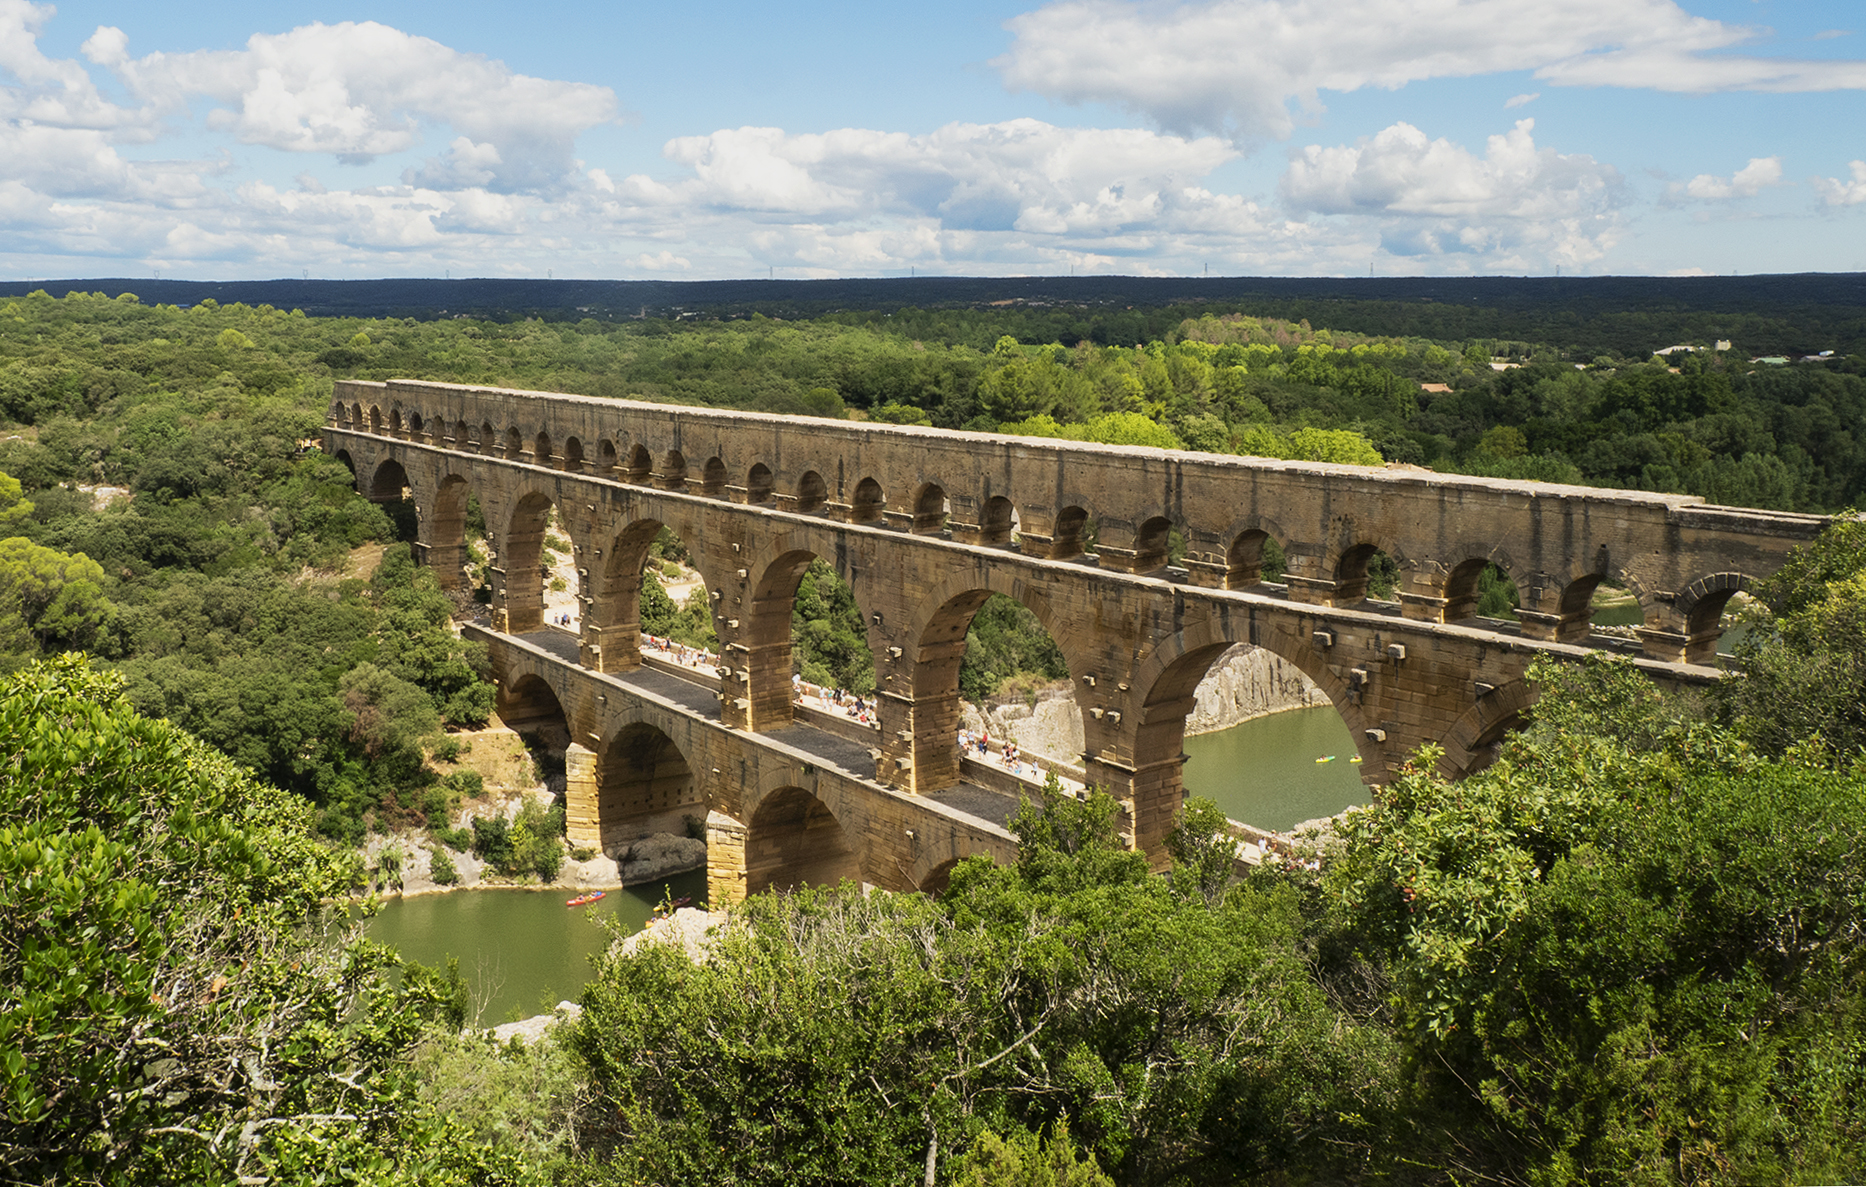 Pont du Gard is an ancient Roman aqueduct in Provence, France. Easy daytrip from Avignon for exploring the Roman ruins, swimming, picnicking, kayaking or just relaxing.